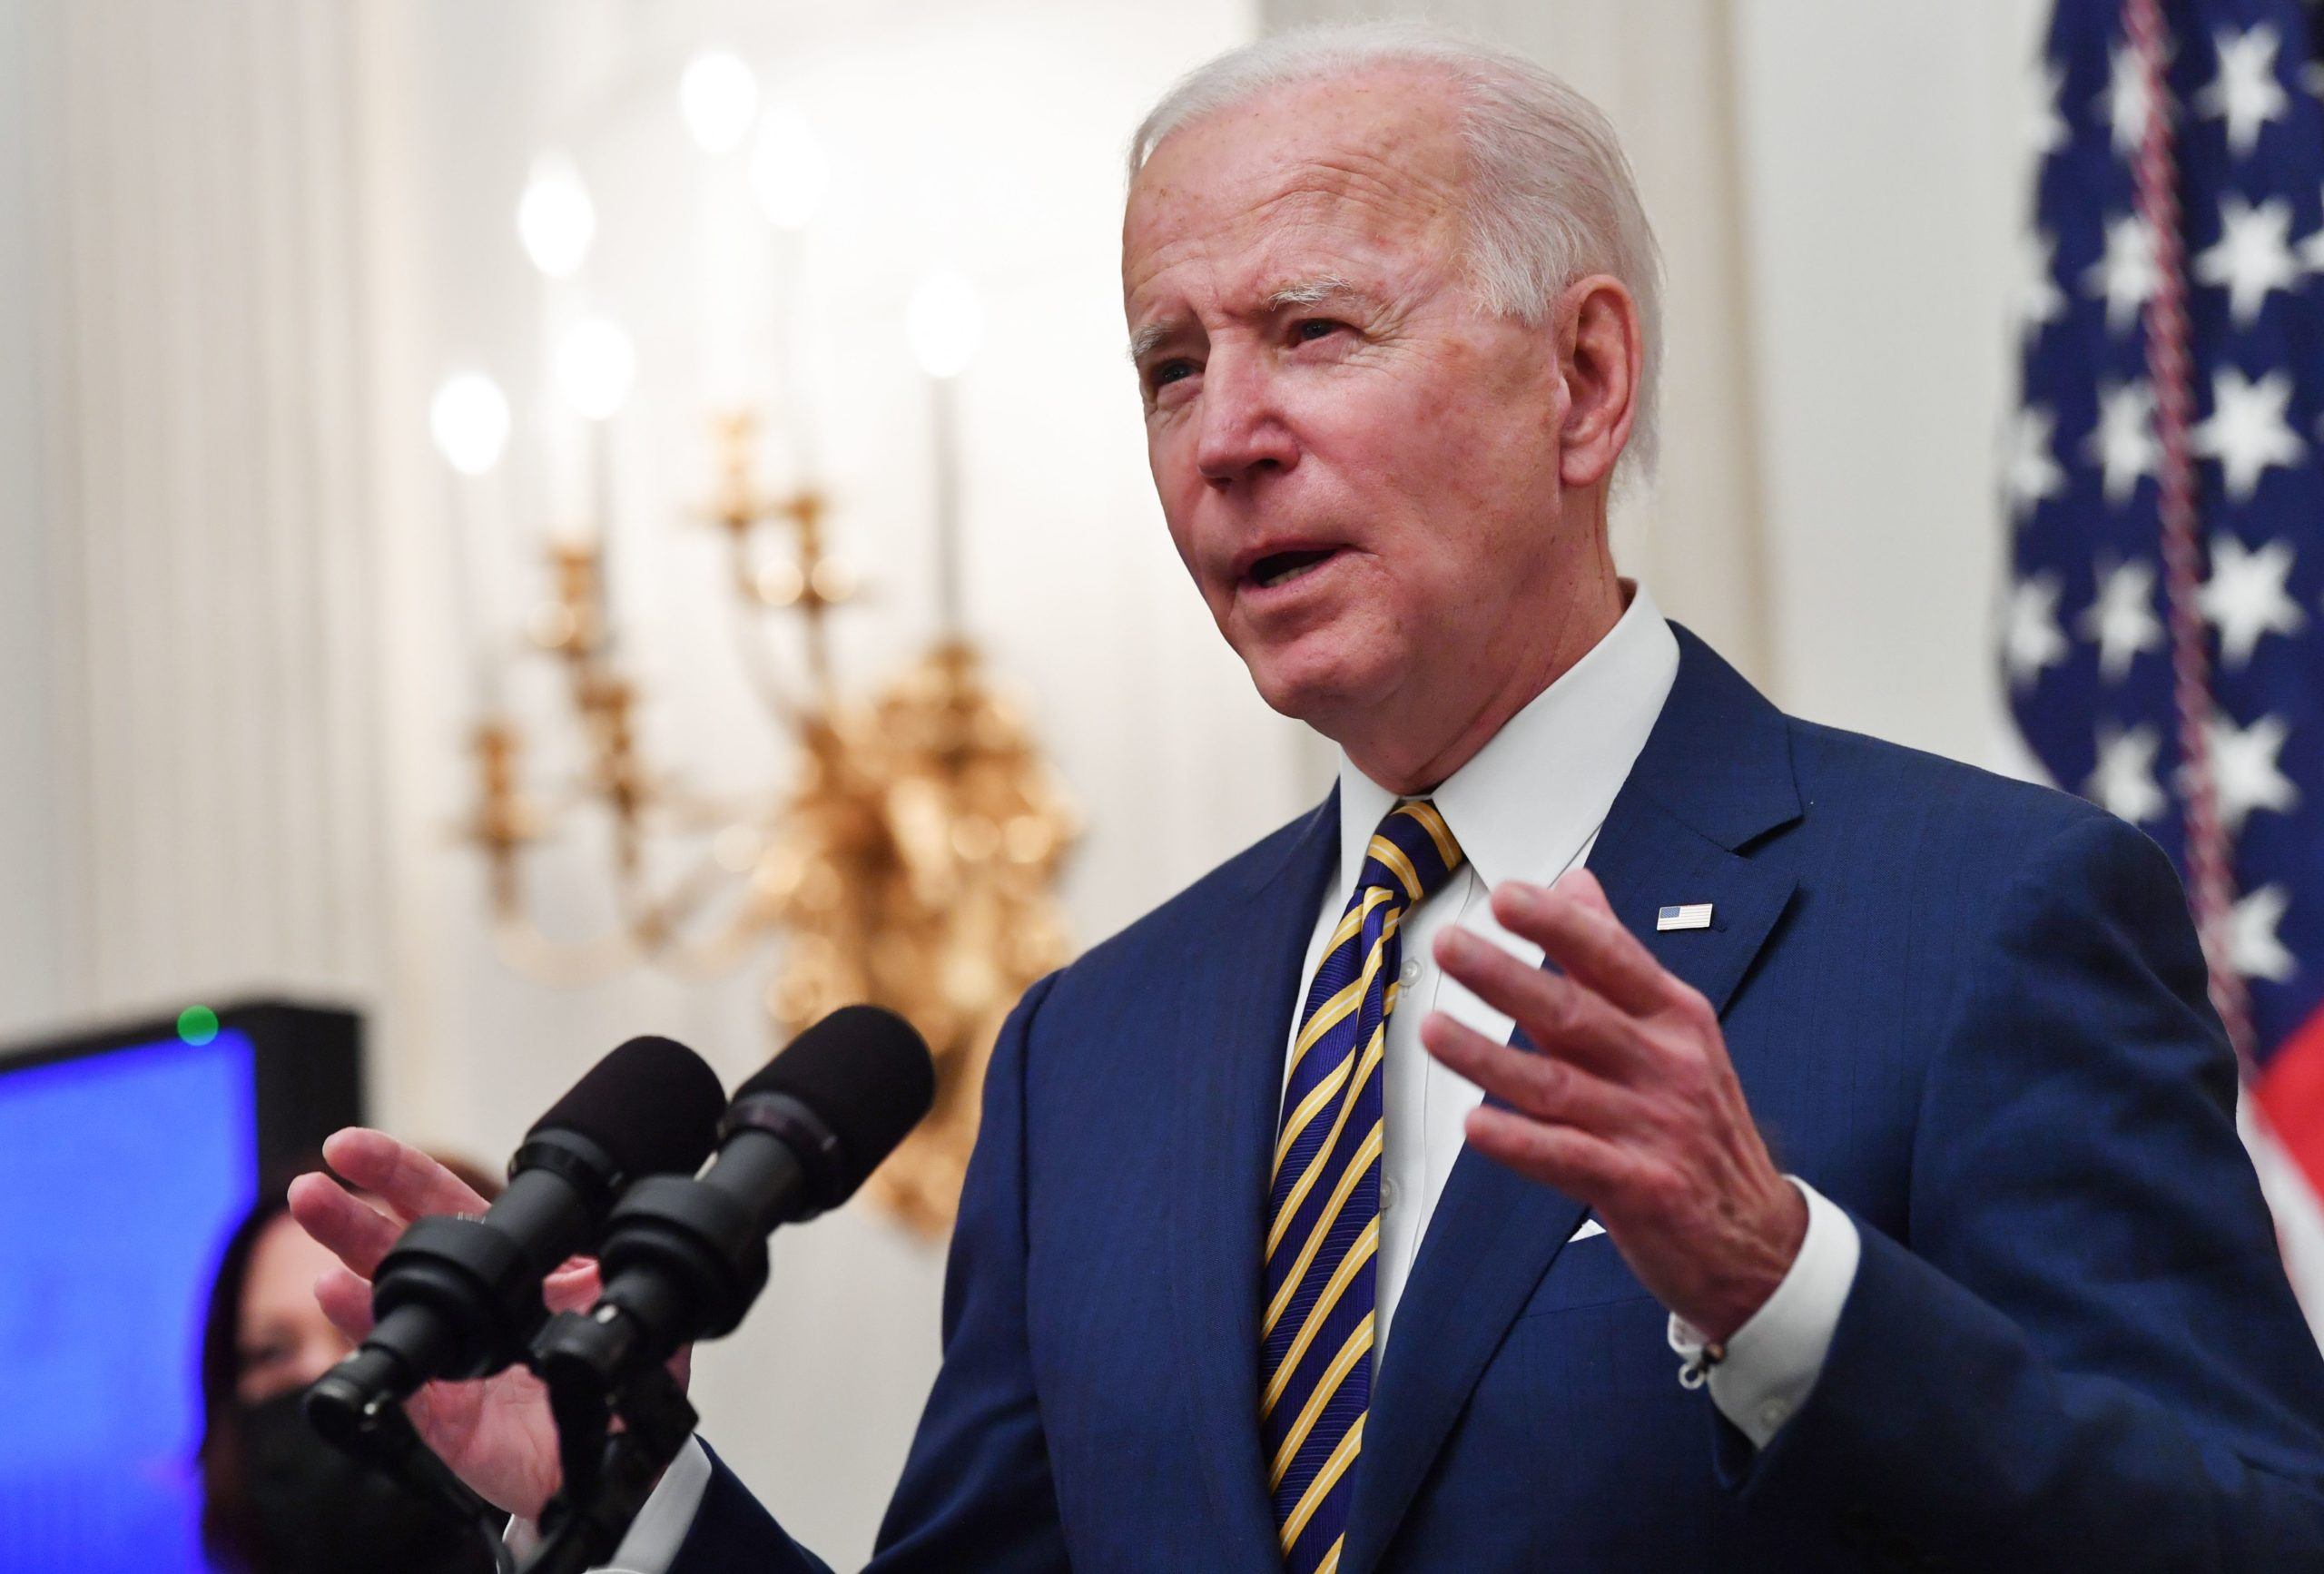 US President Joe Biden speaks about the Covid-19 response before signing executive orders for economic relief to Covid-hit families and businesses in the State Dining Room of the White House in Washington, DC, on January 22, 2021. (Photo by NICHOLAS KAMM/AFP via Getty Images)